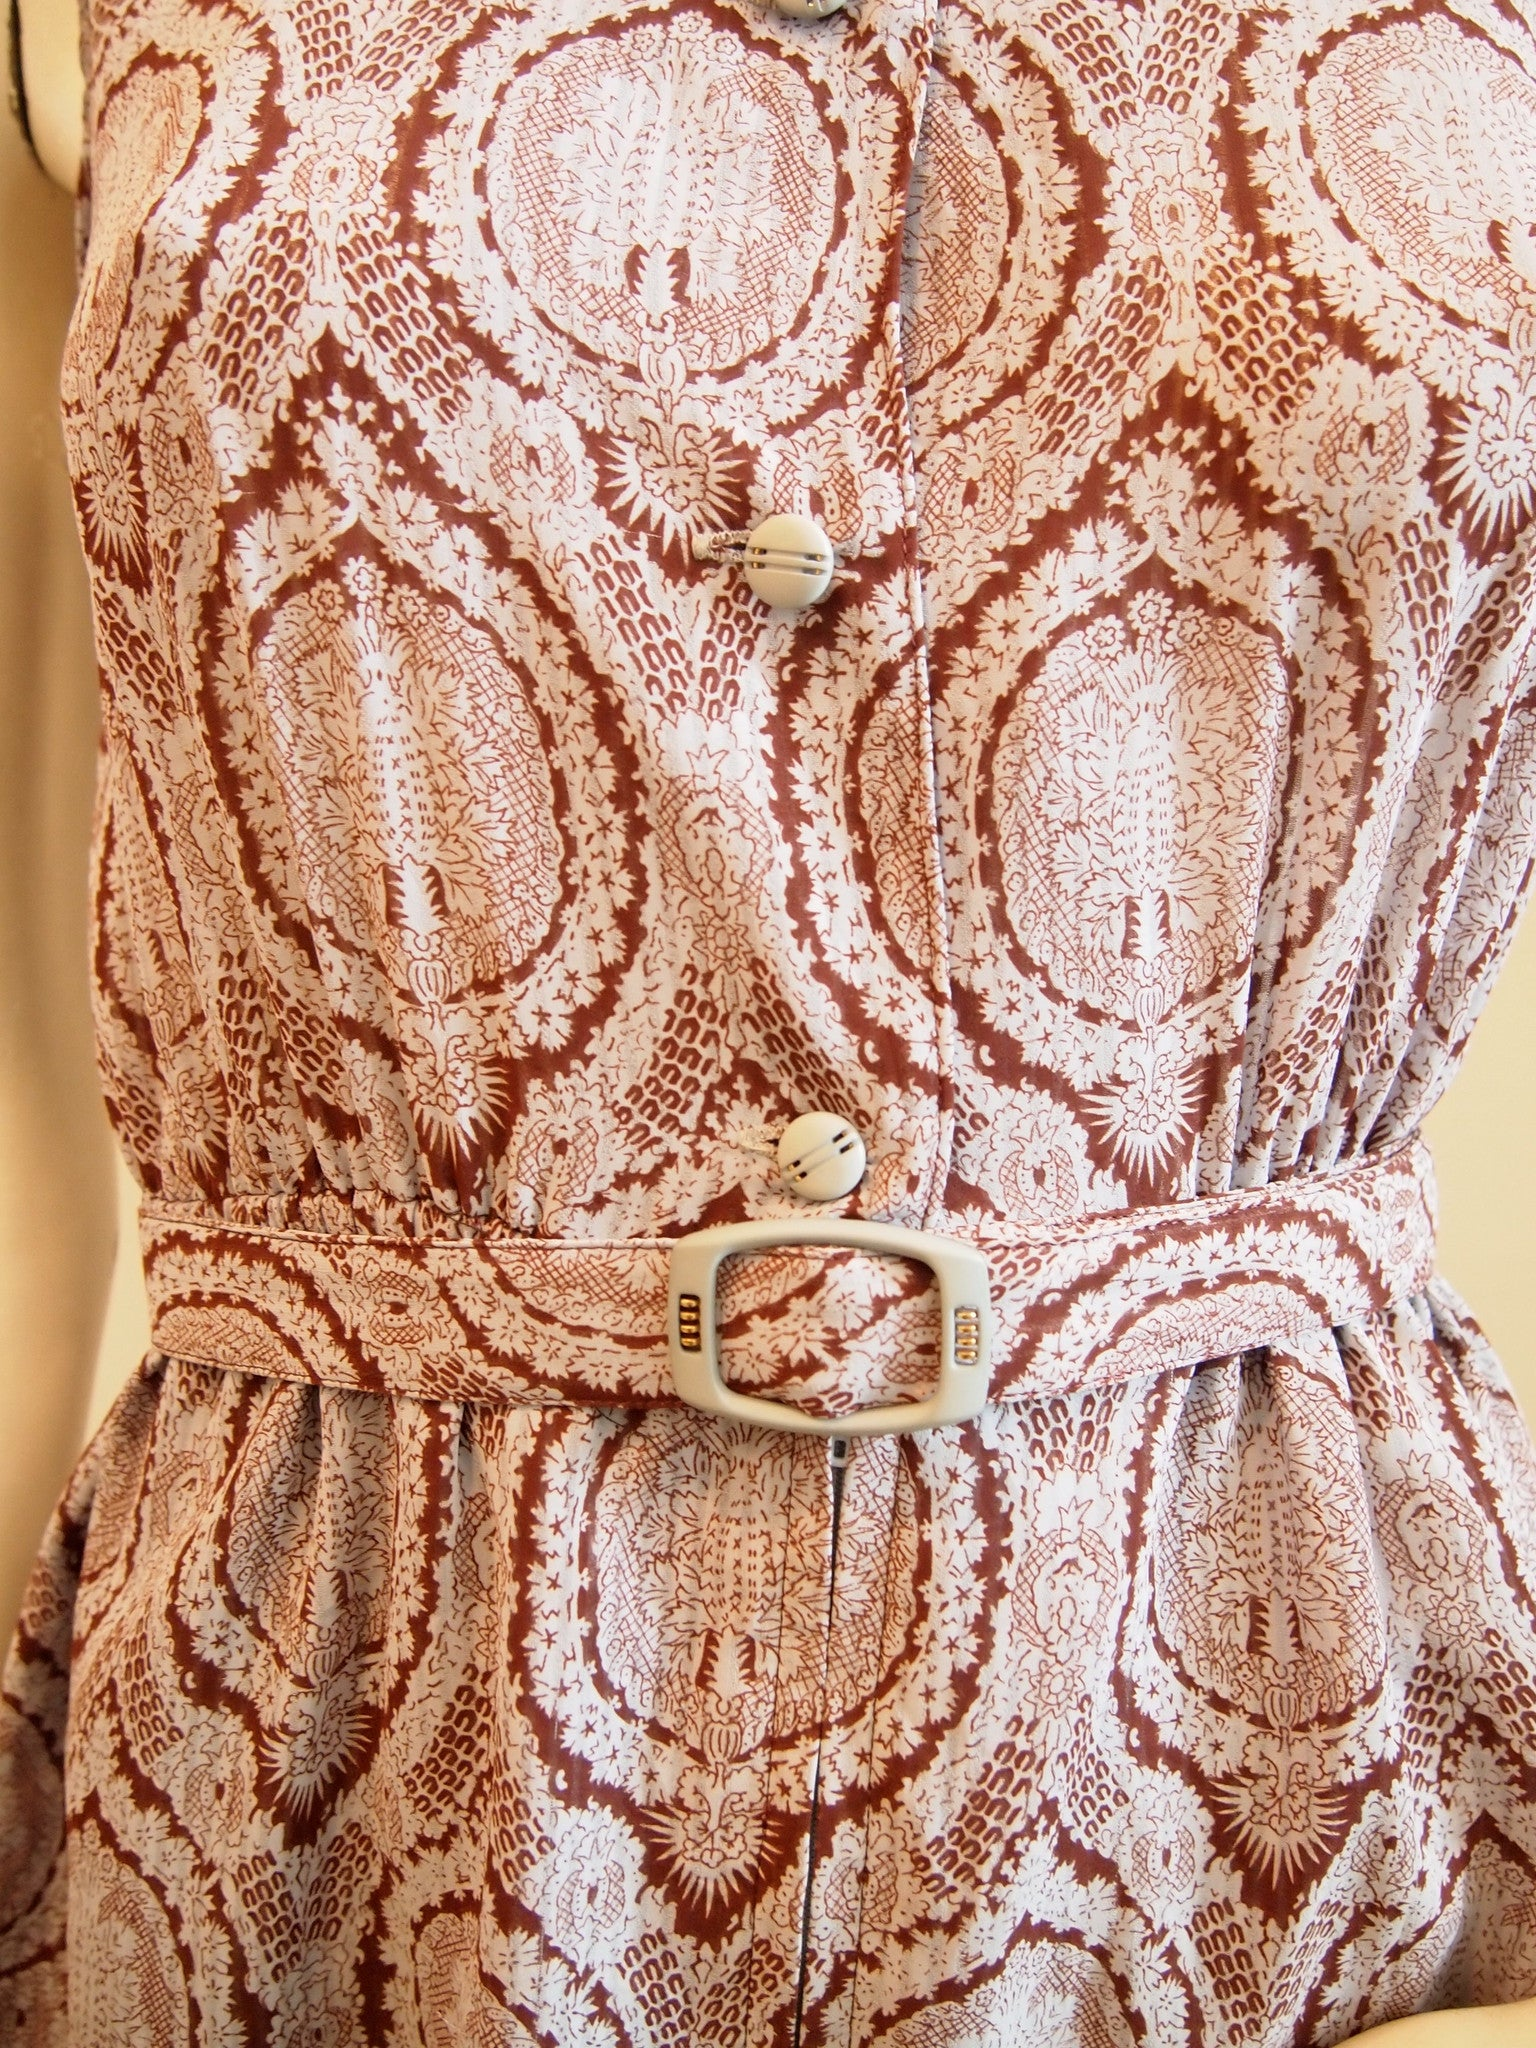 The Baroque Vintage Dress